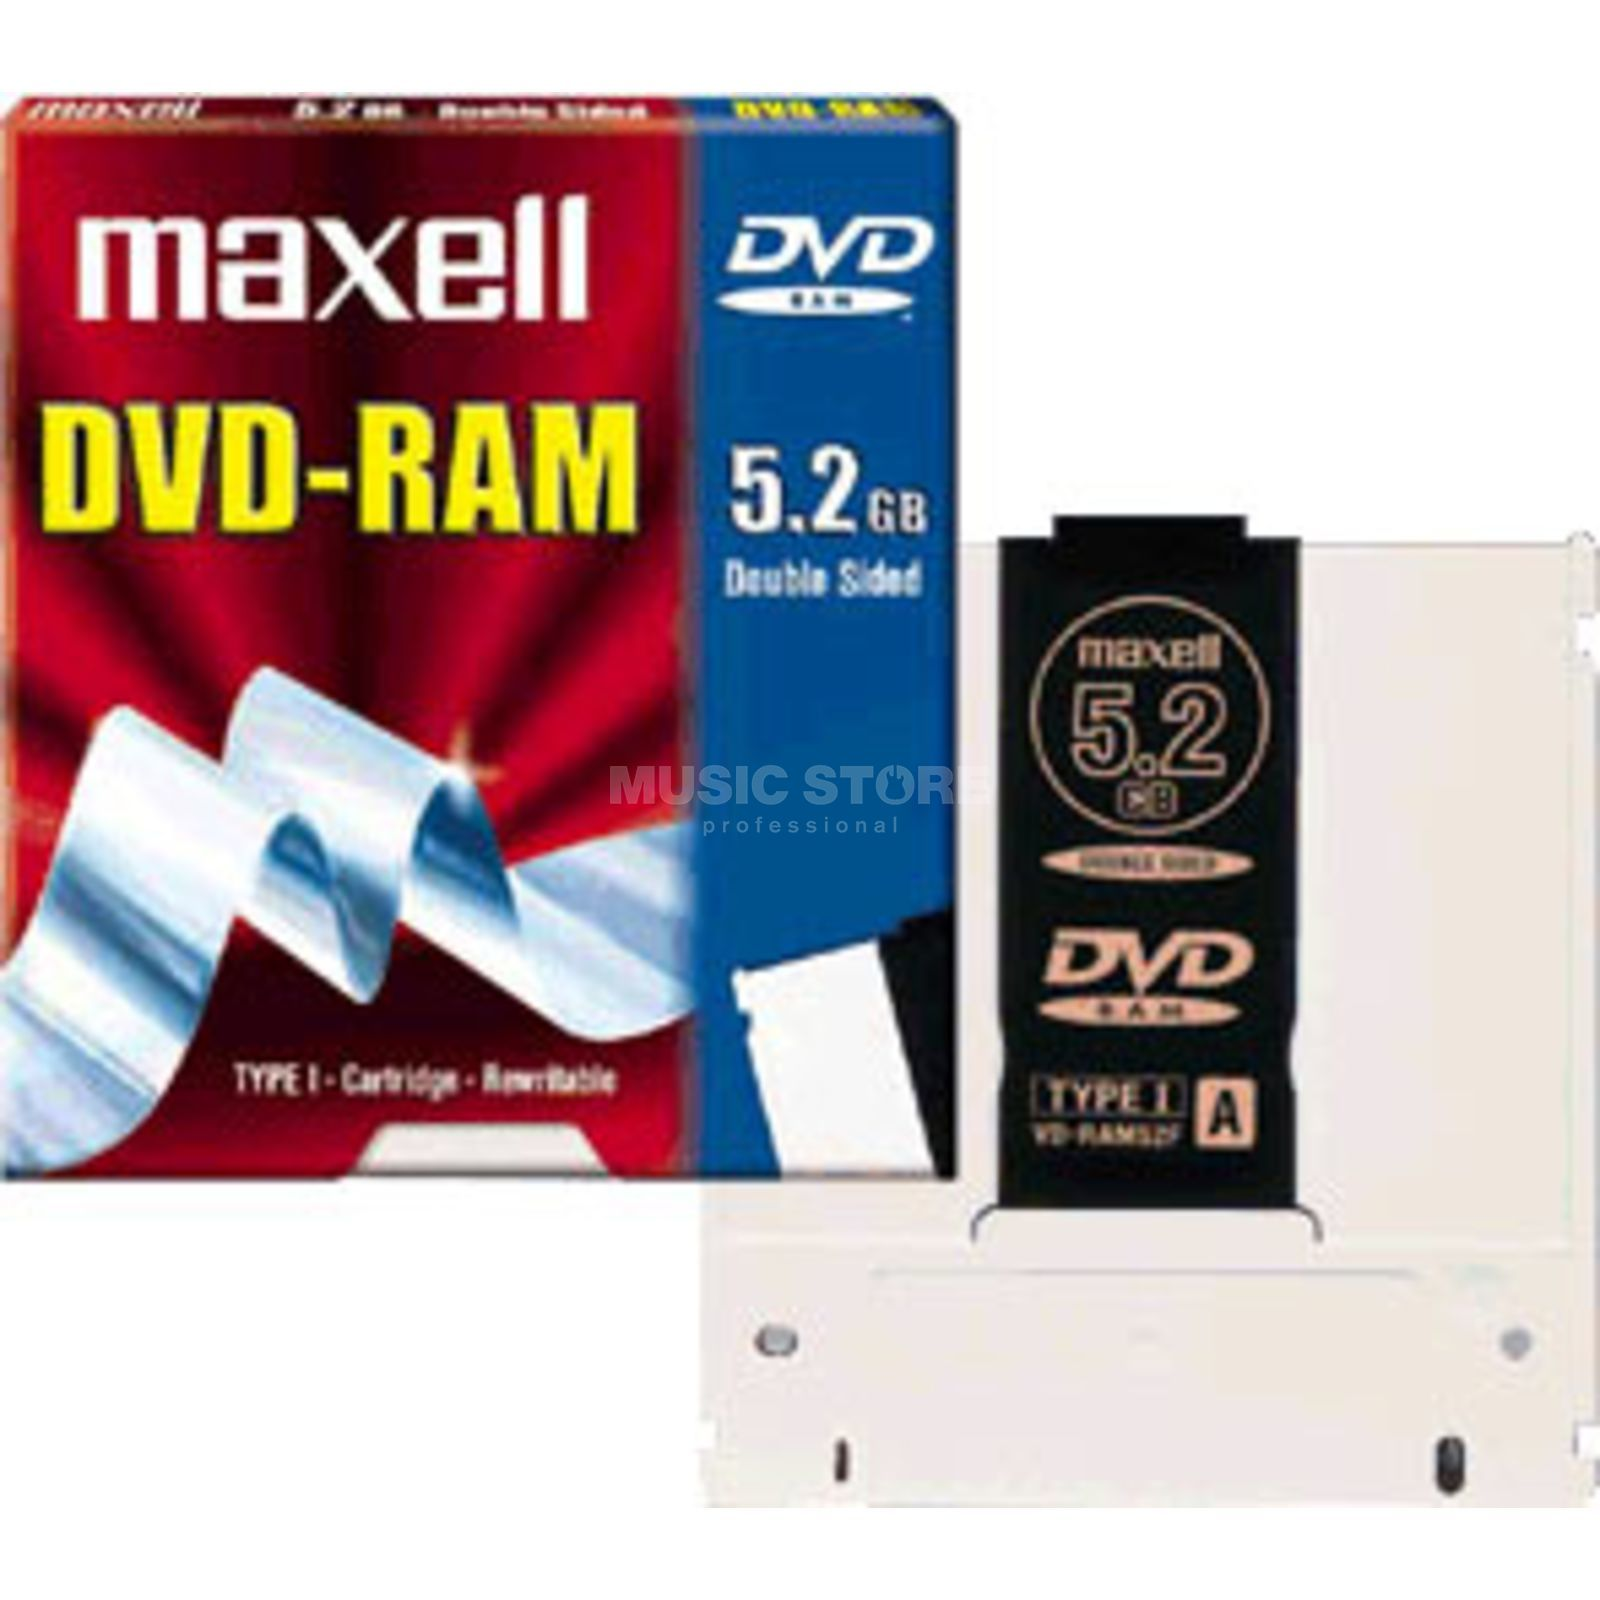 Maxell DVD-RAM 94F Typ I 9,4 GB Double Sided Produktbild